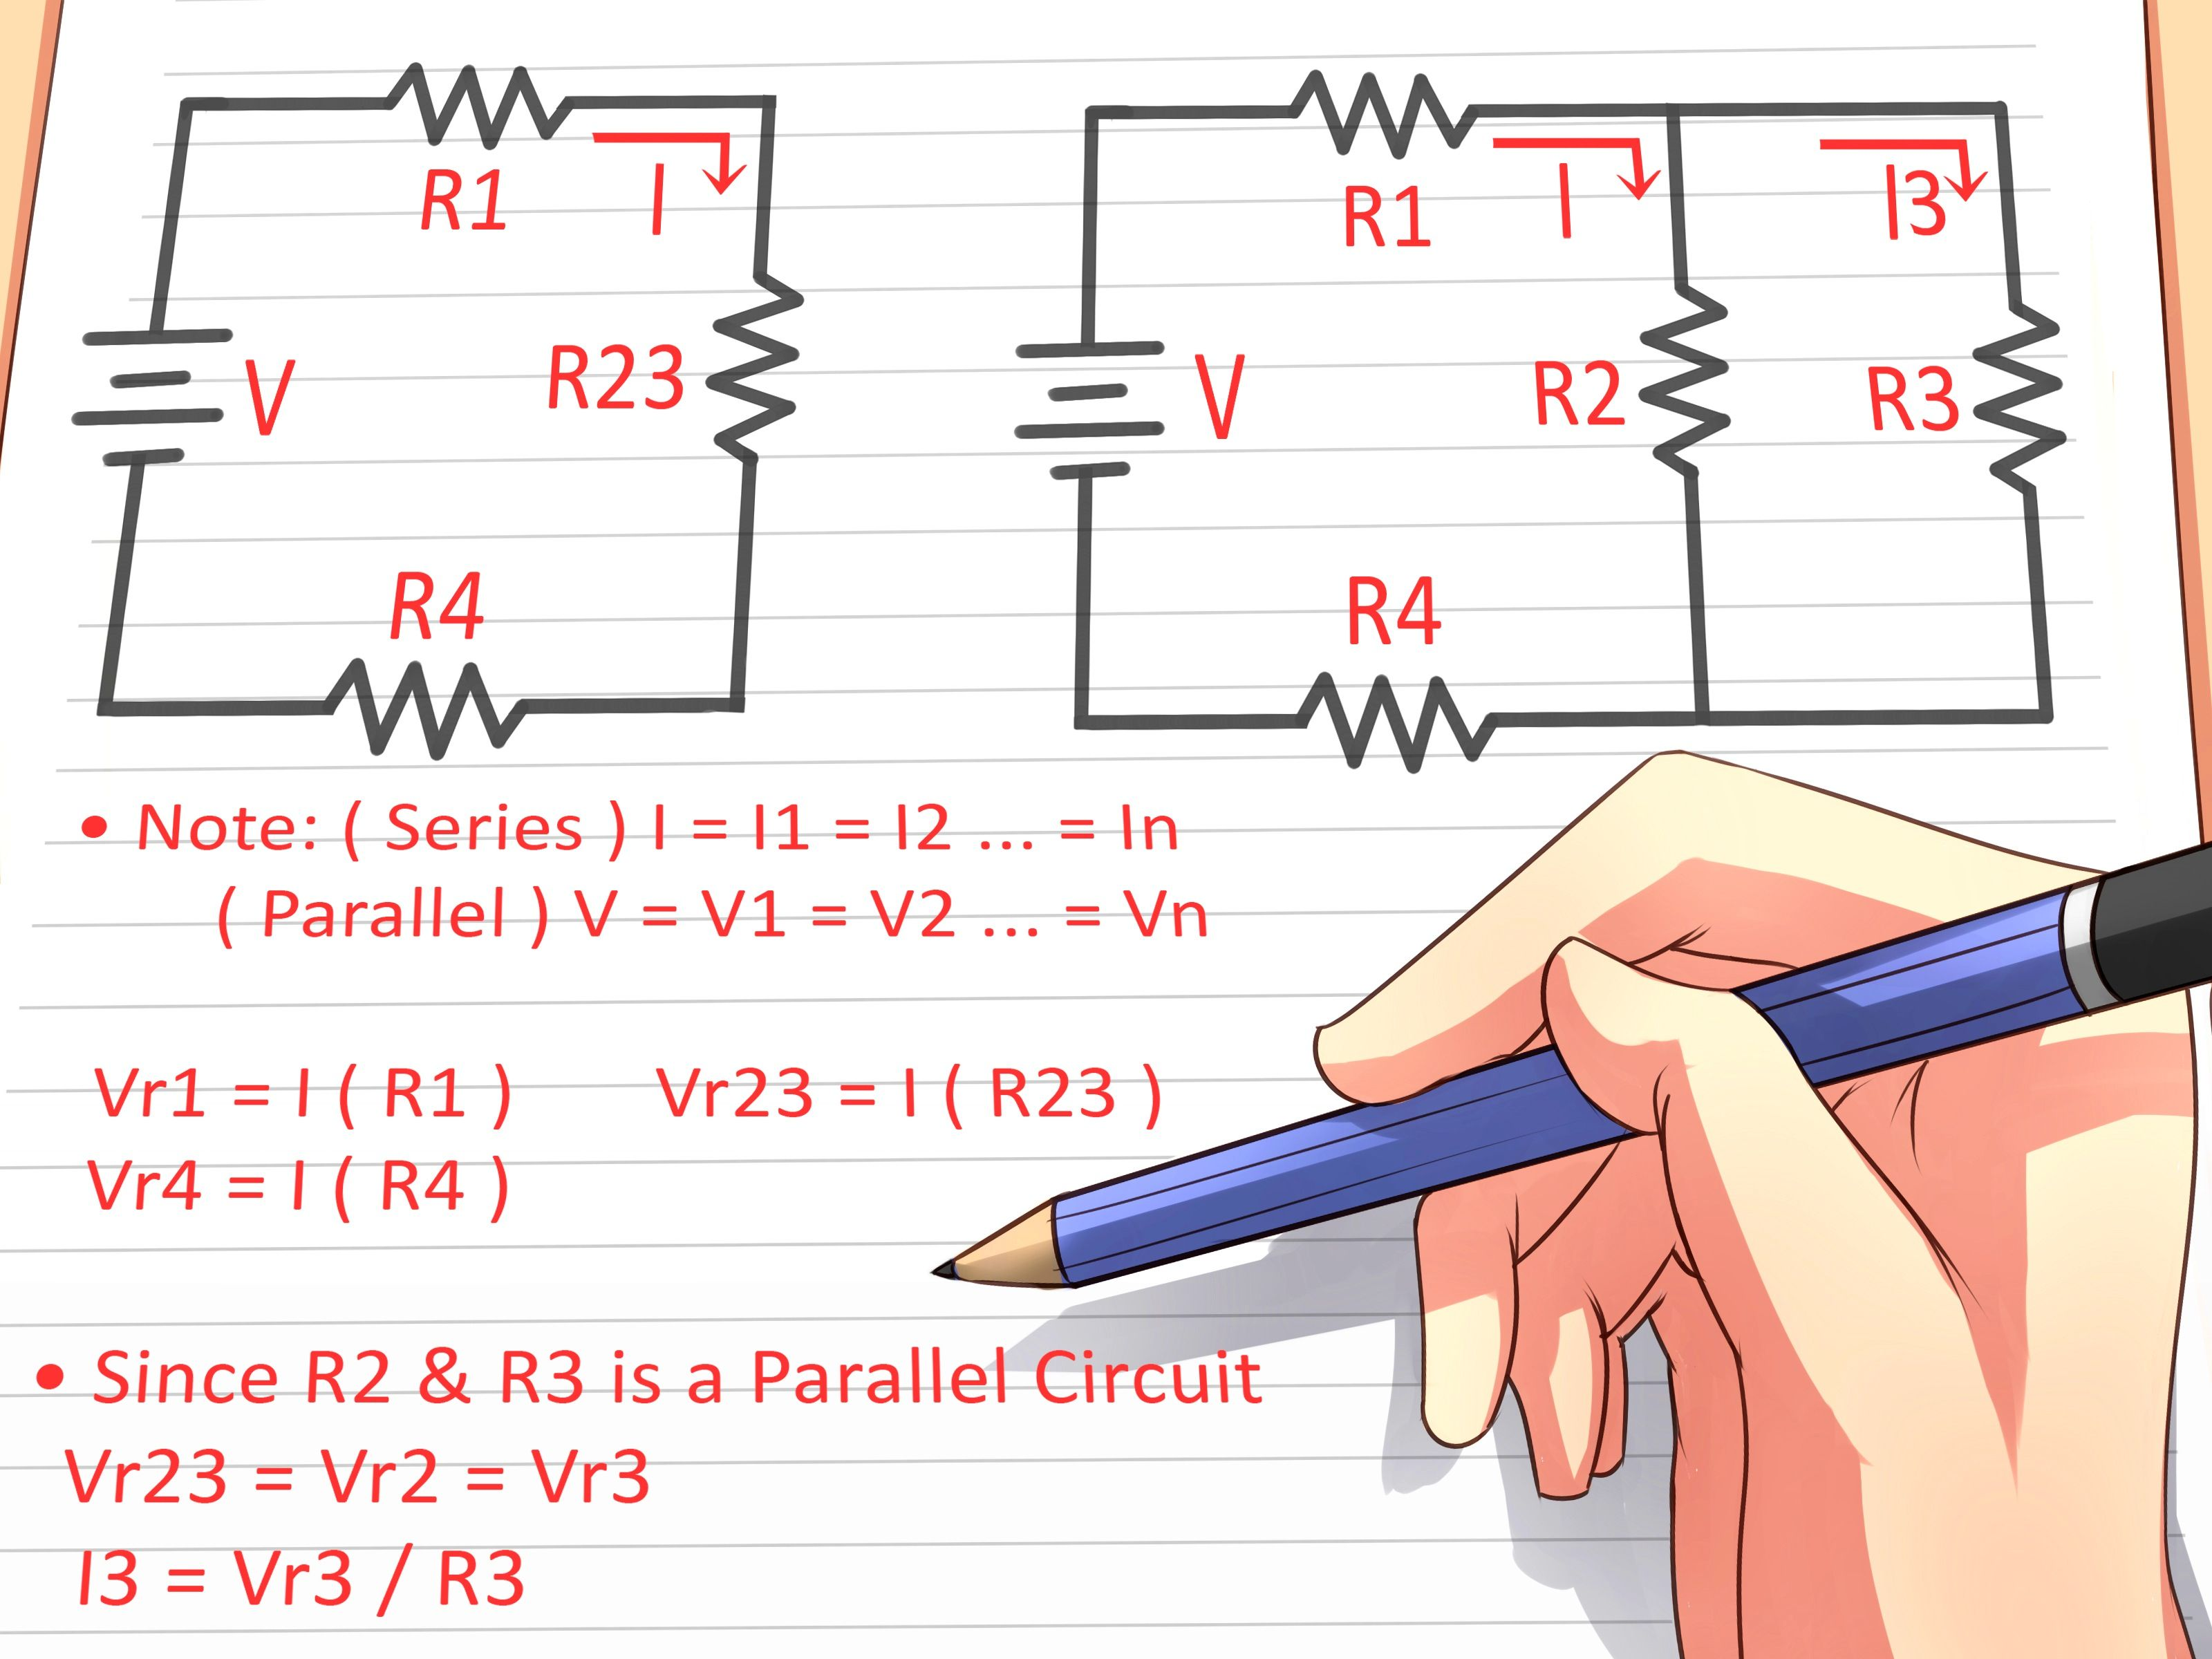 Component How To Analyze Resistive Circuits Using Ohms Law 3 Steps Voltage Regulator Charger Circuit Hd Walls Find Wallpapers Drop In Parallel Series Across Led Resistor Amperage A Calculation